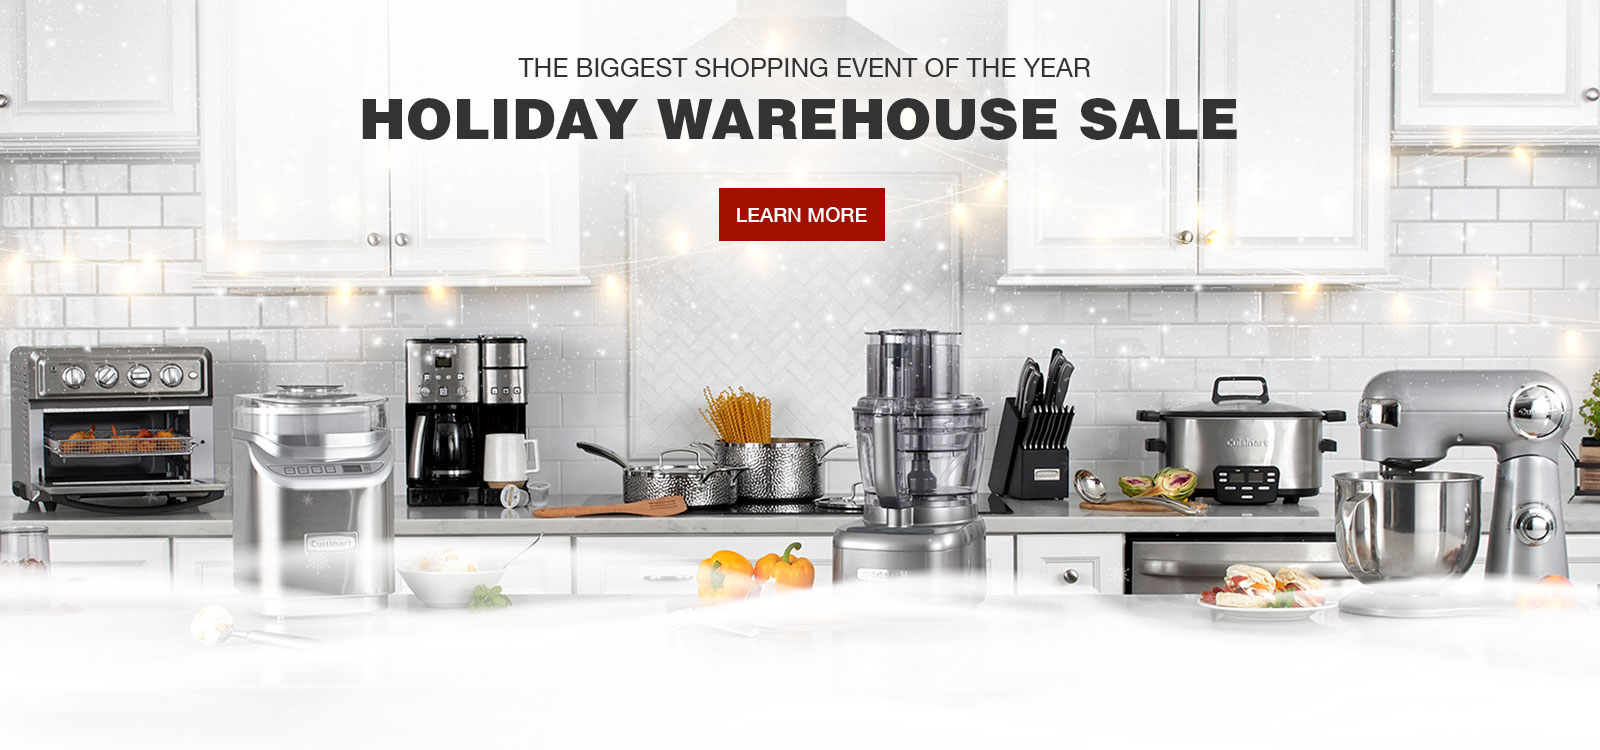 Warehouse Sale 2019